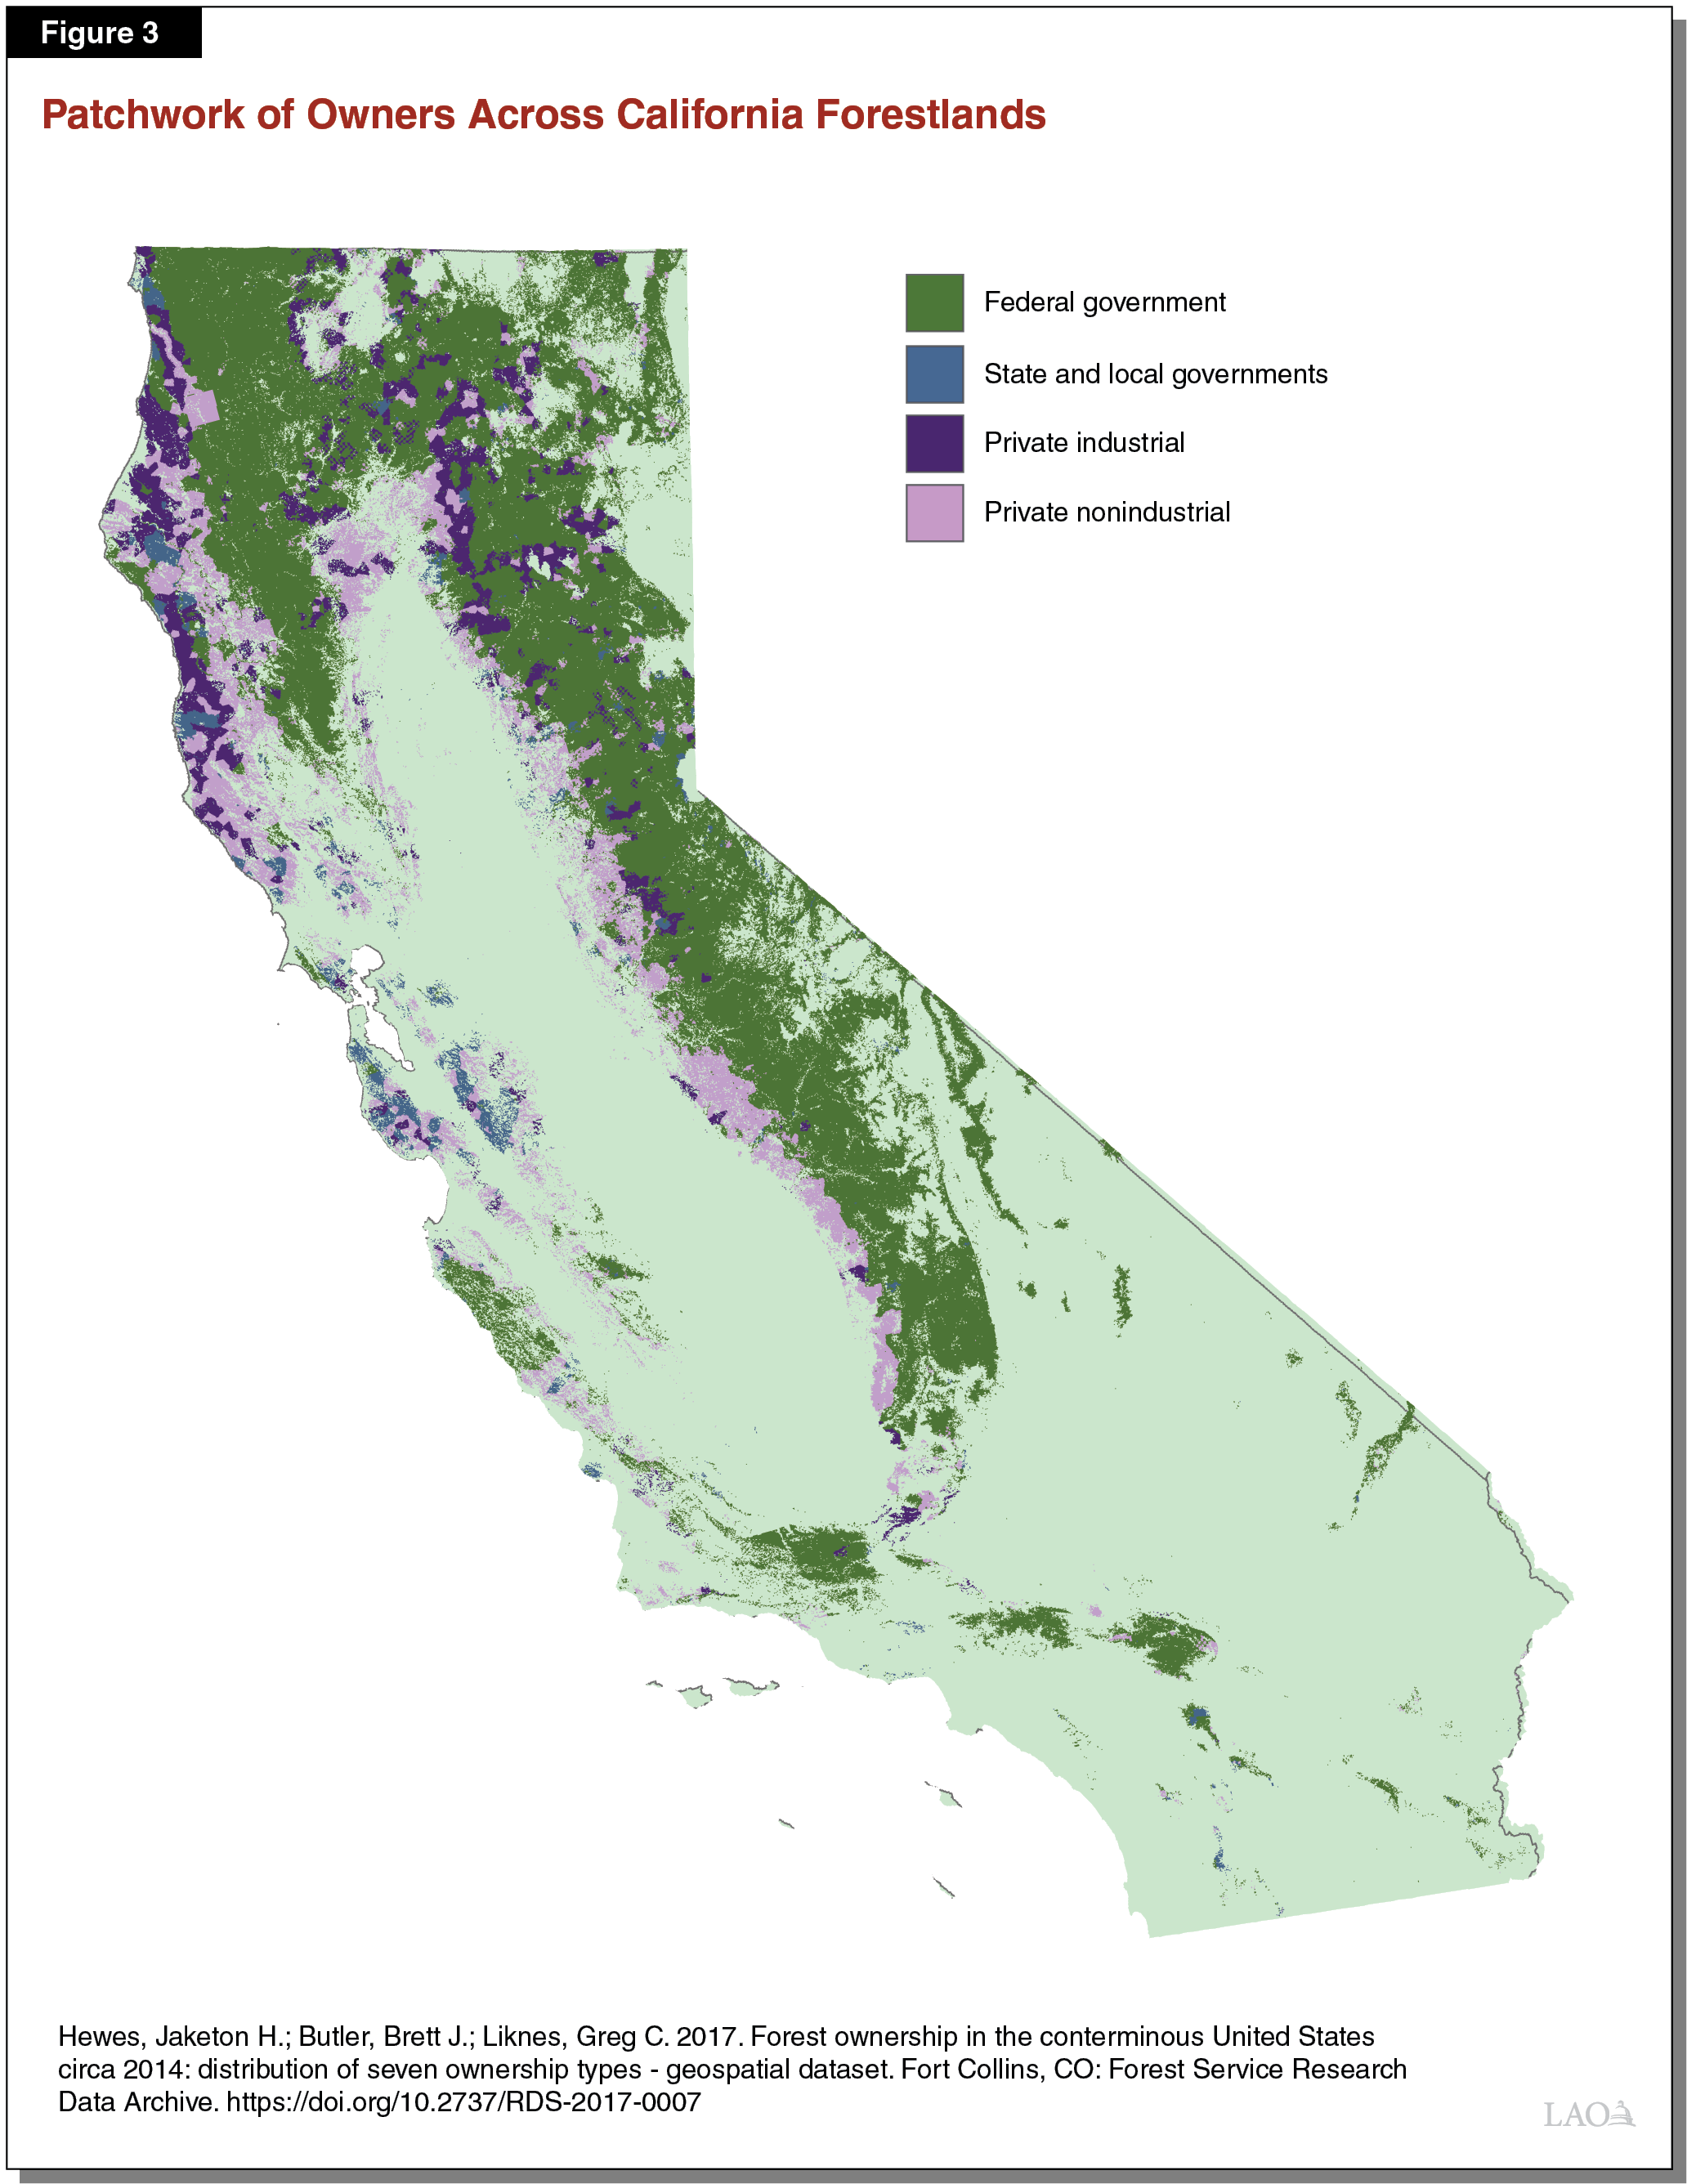 Figure 3 - Patchwork of Owners Across California Forestlands